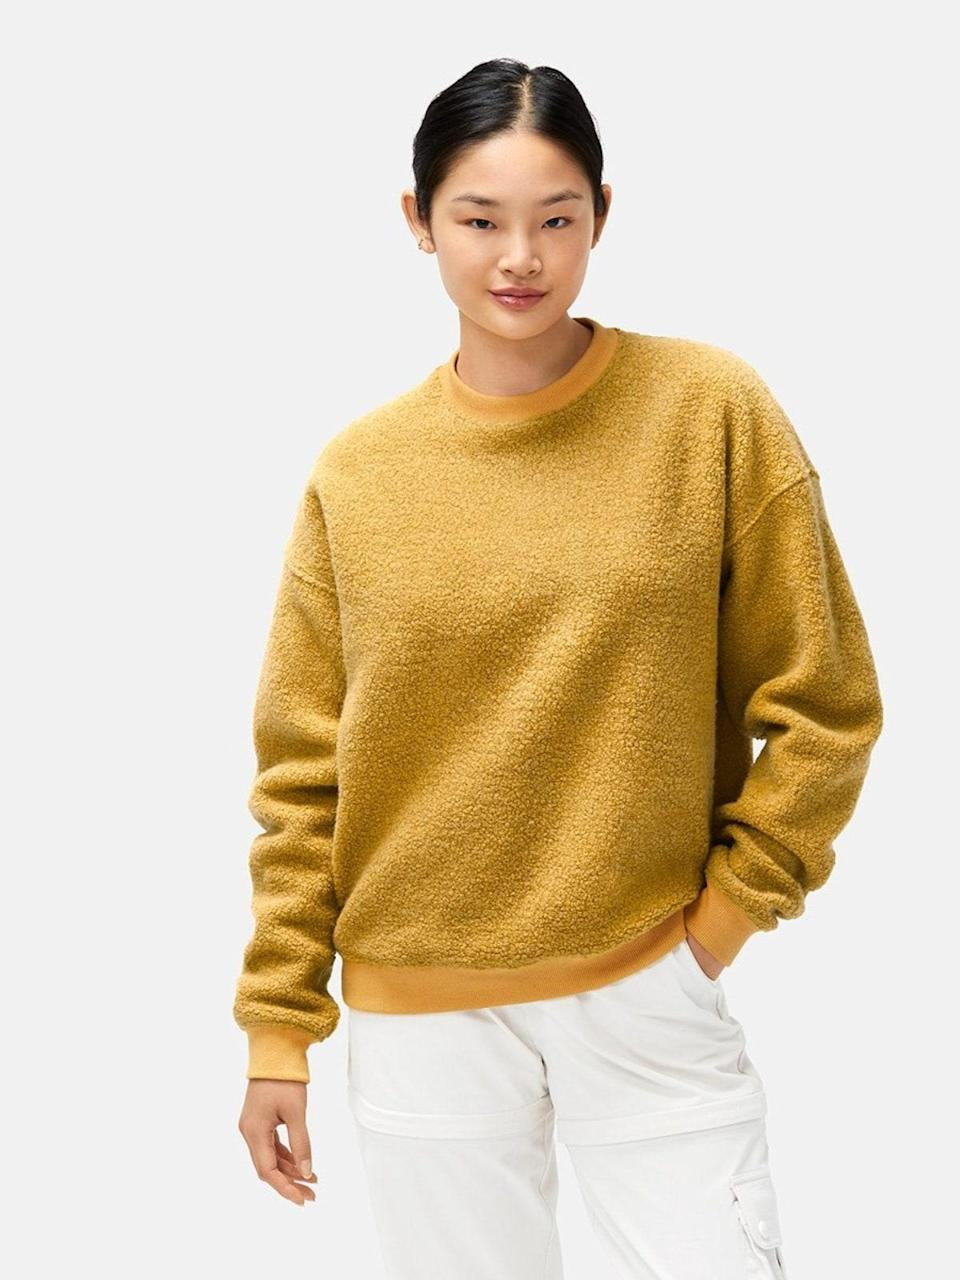 """Outdoor Voices' best-selling plush crewneck isn't a want but a <em>need</em>. We're vibing the Dijon mustard-hue, which somehow feels both seasonless and on-trend. $98, Outdoor Voices. <a href=""""https://www.outdoorvoices.com/products/w-megafleece-sweatshirt?variant=32712724774990"""" rel=""""nofollow noopener"""" target=""""_blank"""" data-ylk=""""slk:Get it now!"""" class=""""link rapid-noclick-resp"""">Get it now!</a>"""